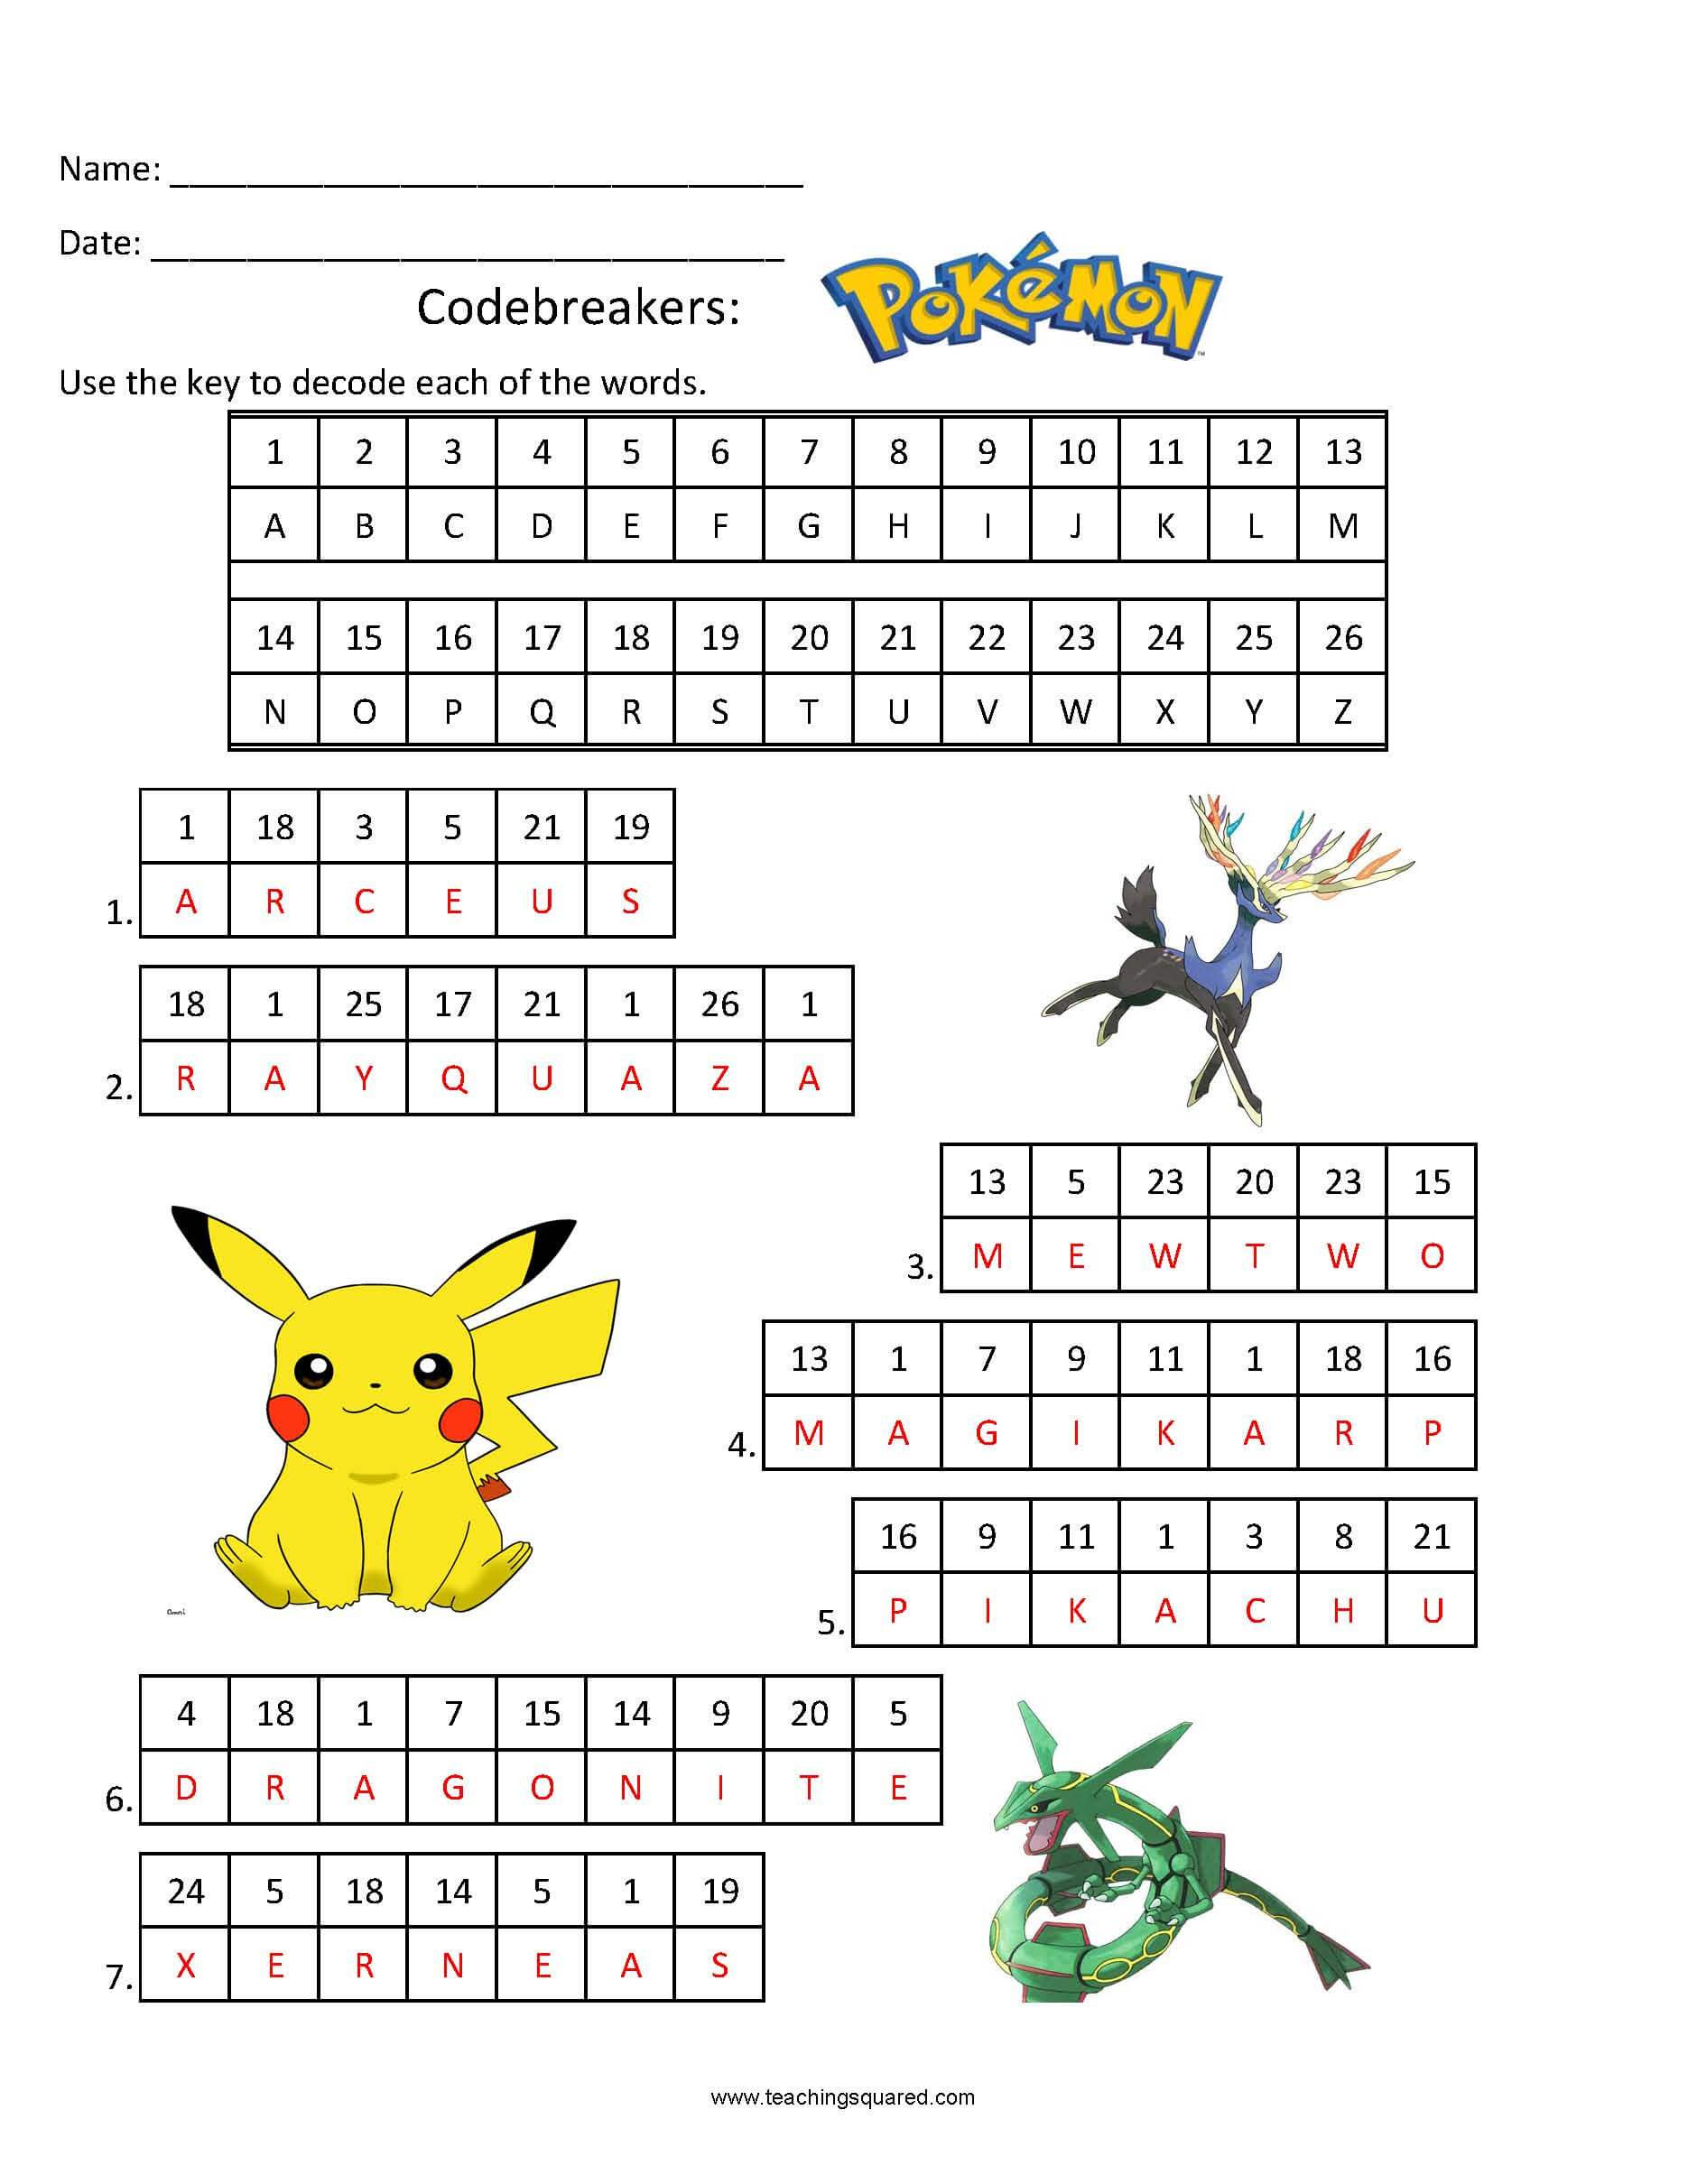 Pokemon Math Worksheets Codebreakers Pokemon Teaching Squared